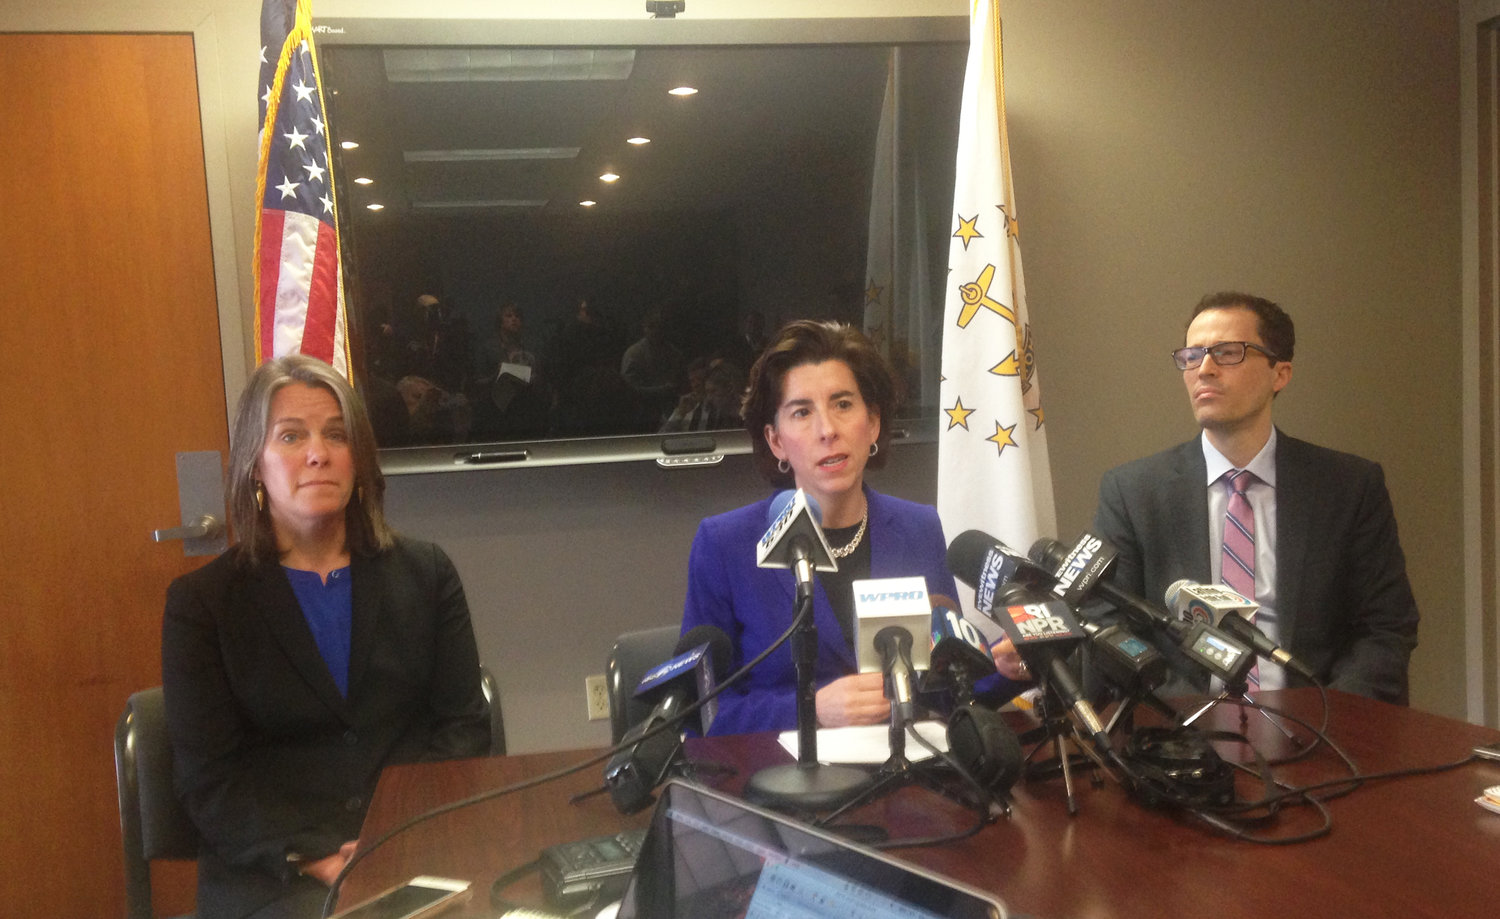 At a Feb. 15, 2017, news conference, Gov. Gina Raimondo, center, announces the resignation of Elizabeth Roberts as secretary of R.I. EOHHS and the demotion of EOHHS deputy director Jennifer Wood, and the appointment of Anya Rader Wallack, left, as acting secretary at EOHHS. At right is Eric Beane, who was eventually appointed as secretary at EOHHS.